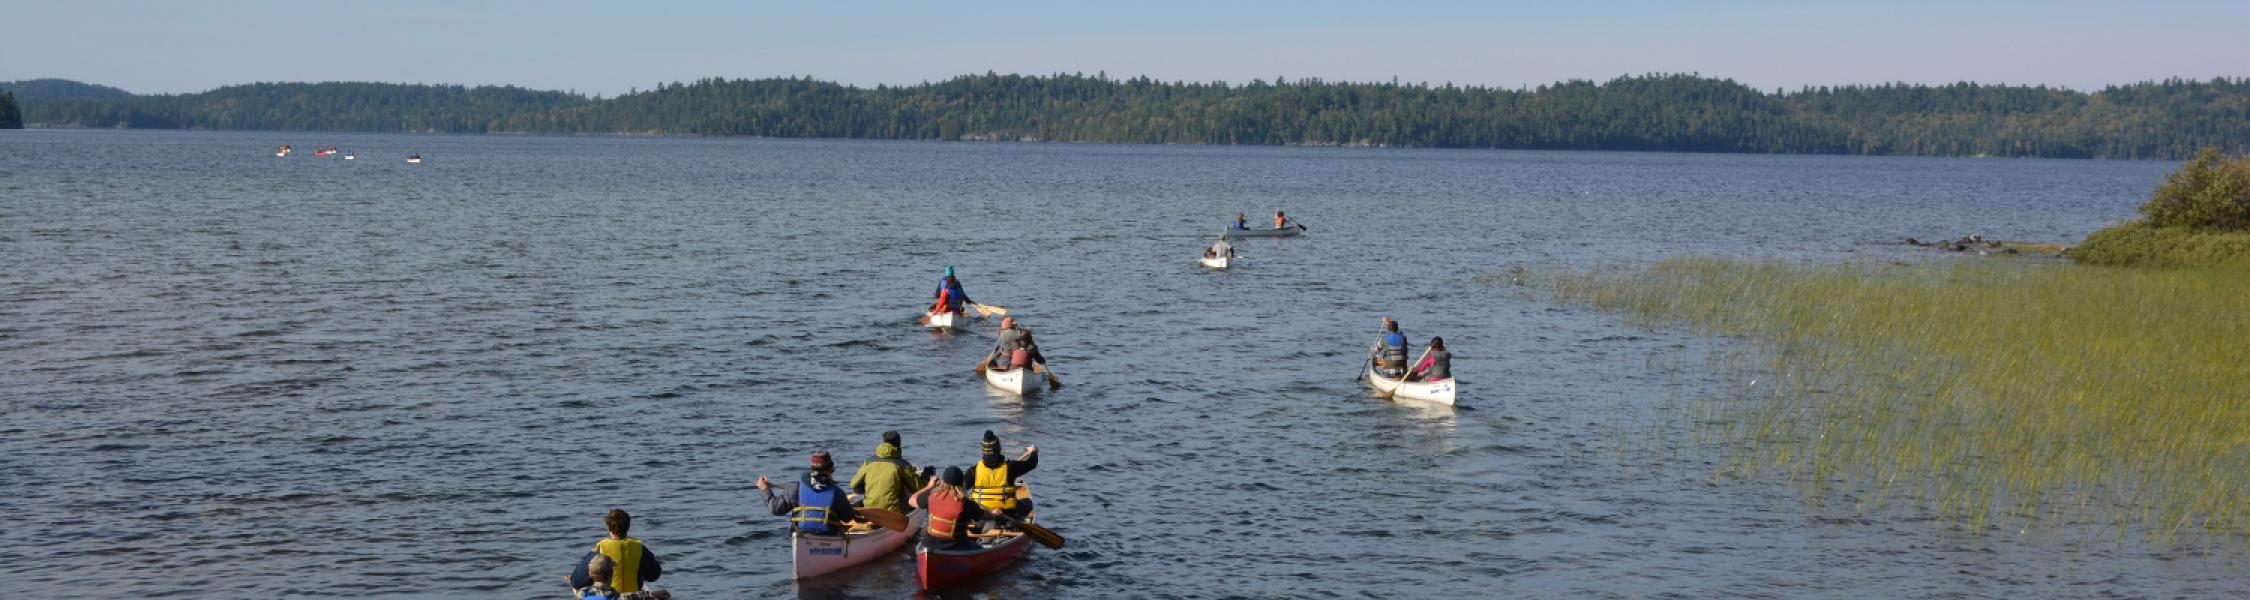 group of canoes out on the lake